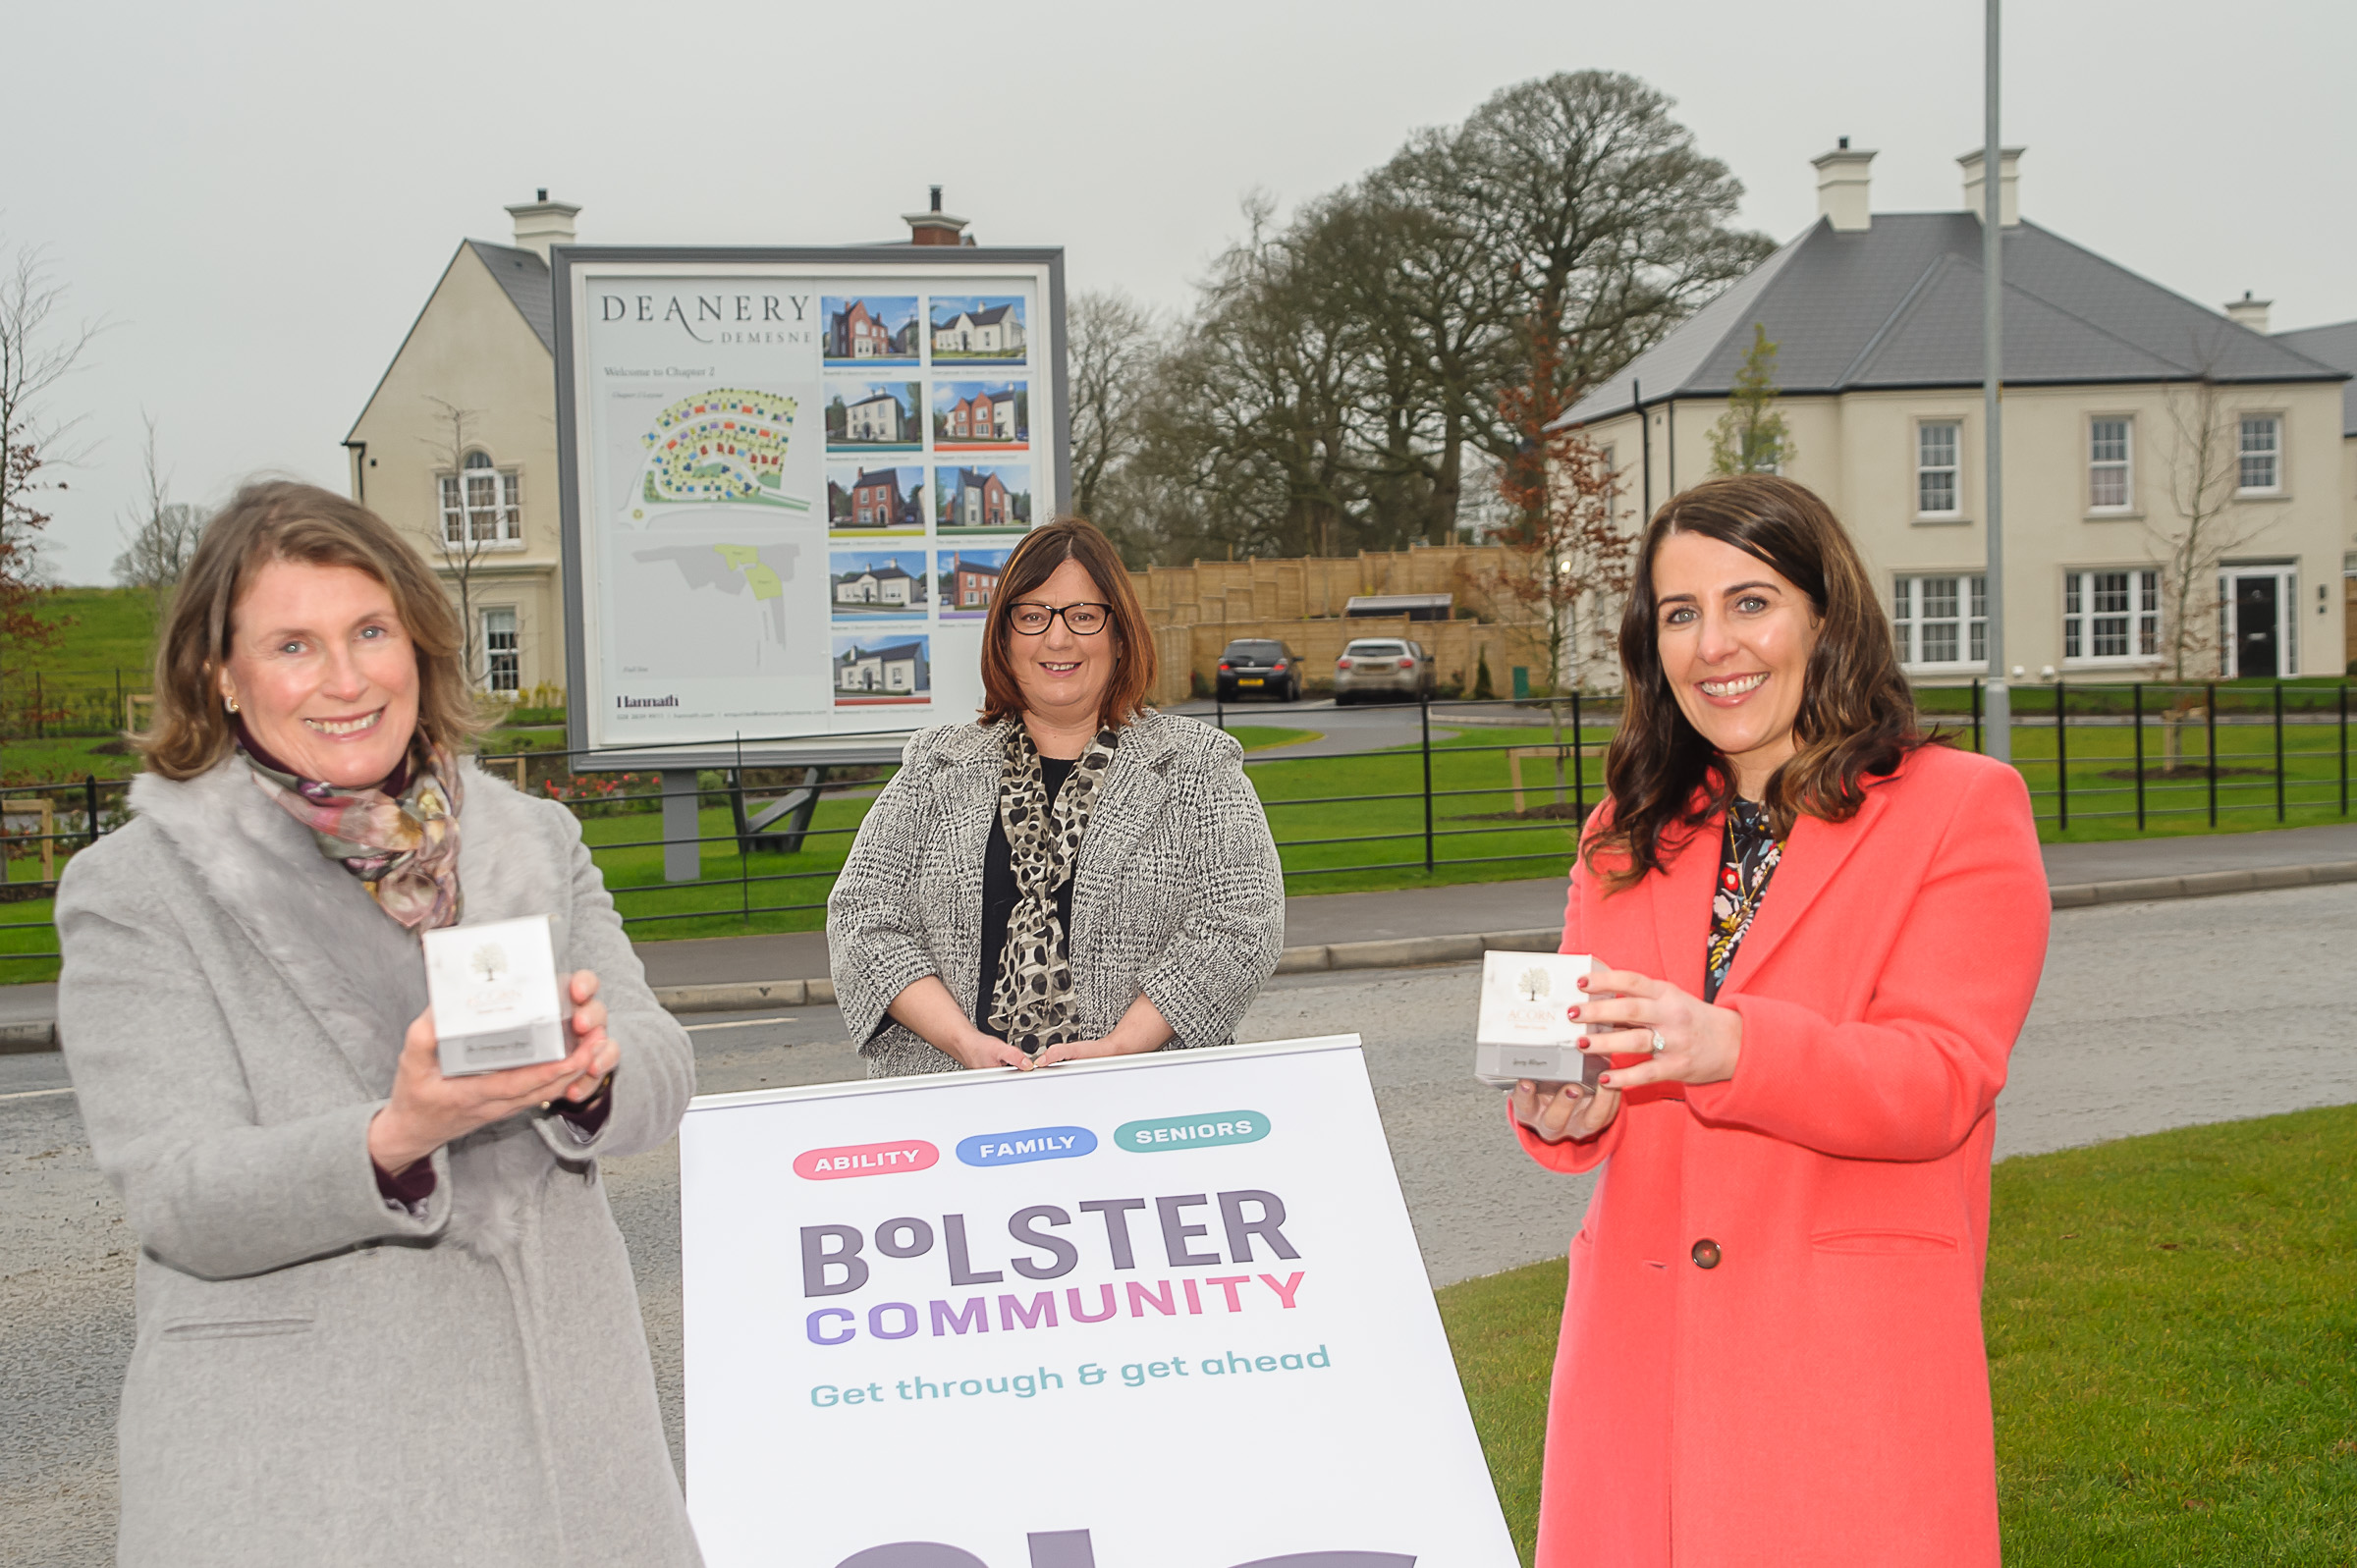 Deanery Demesne adopts 'buy social' partnership with Bolster Community to delight customers and give back to the local community